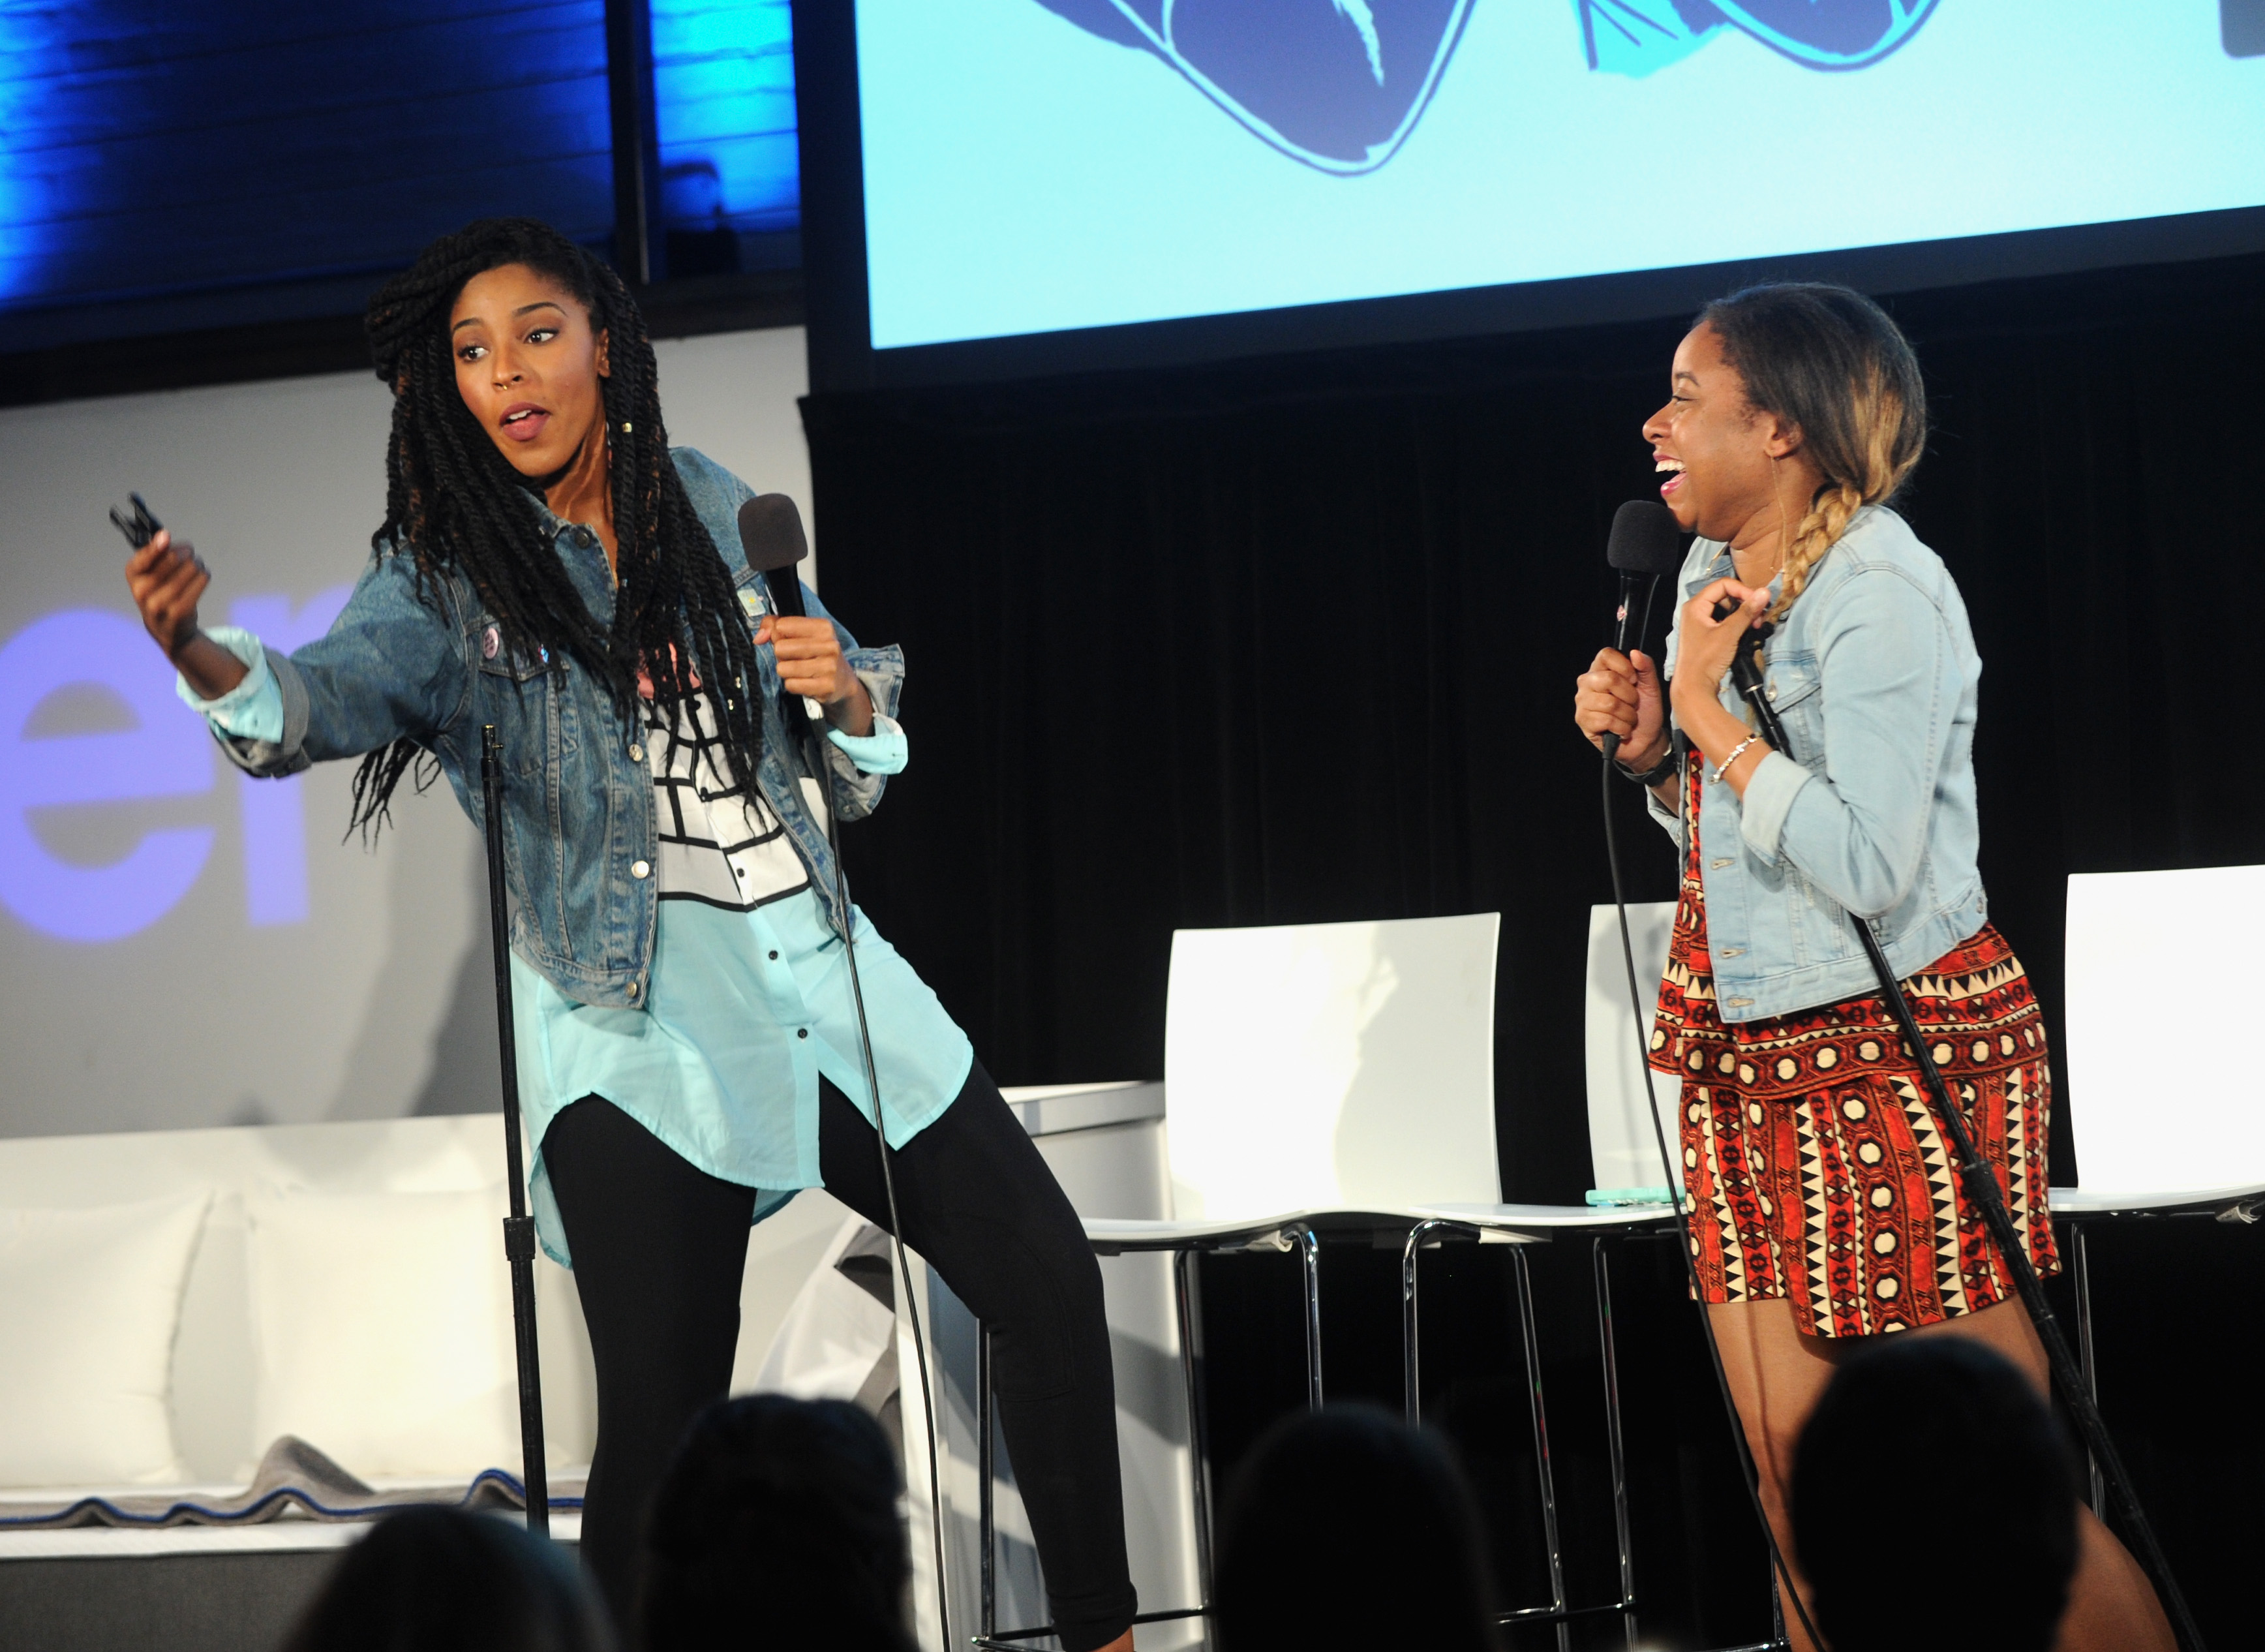 Comedians Jessica Williams and Phoebe Robinson perform onstage during the 2 Dope Queens podcast at the Vulture Festival Casper Podcast Lounge at Highline Stages on May 22, 2016 in New York City.